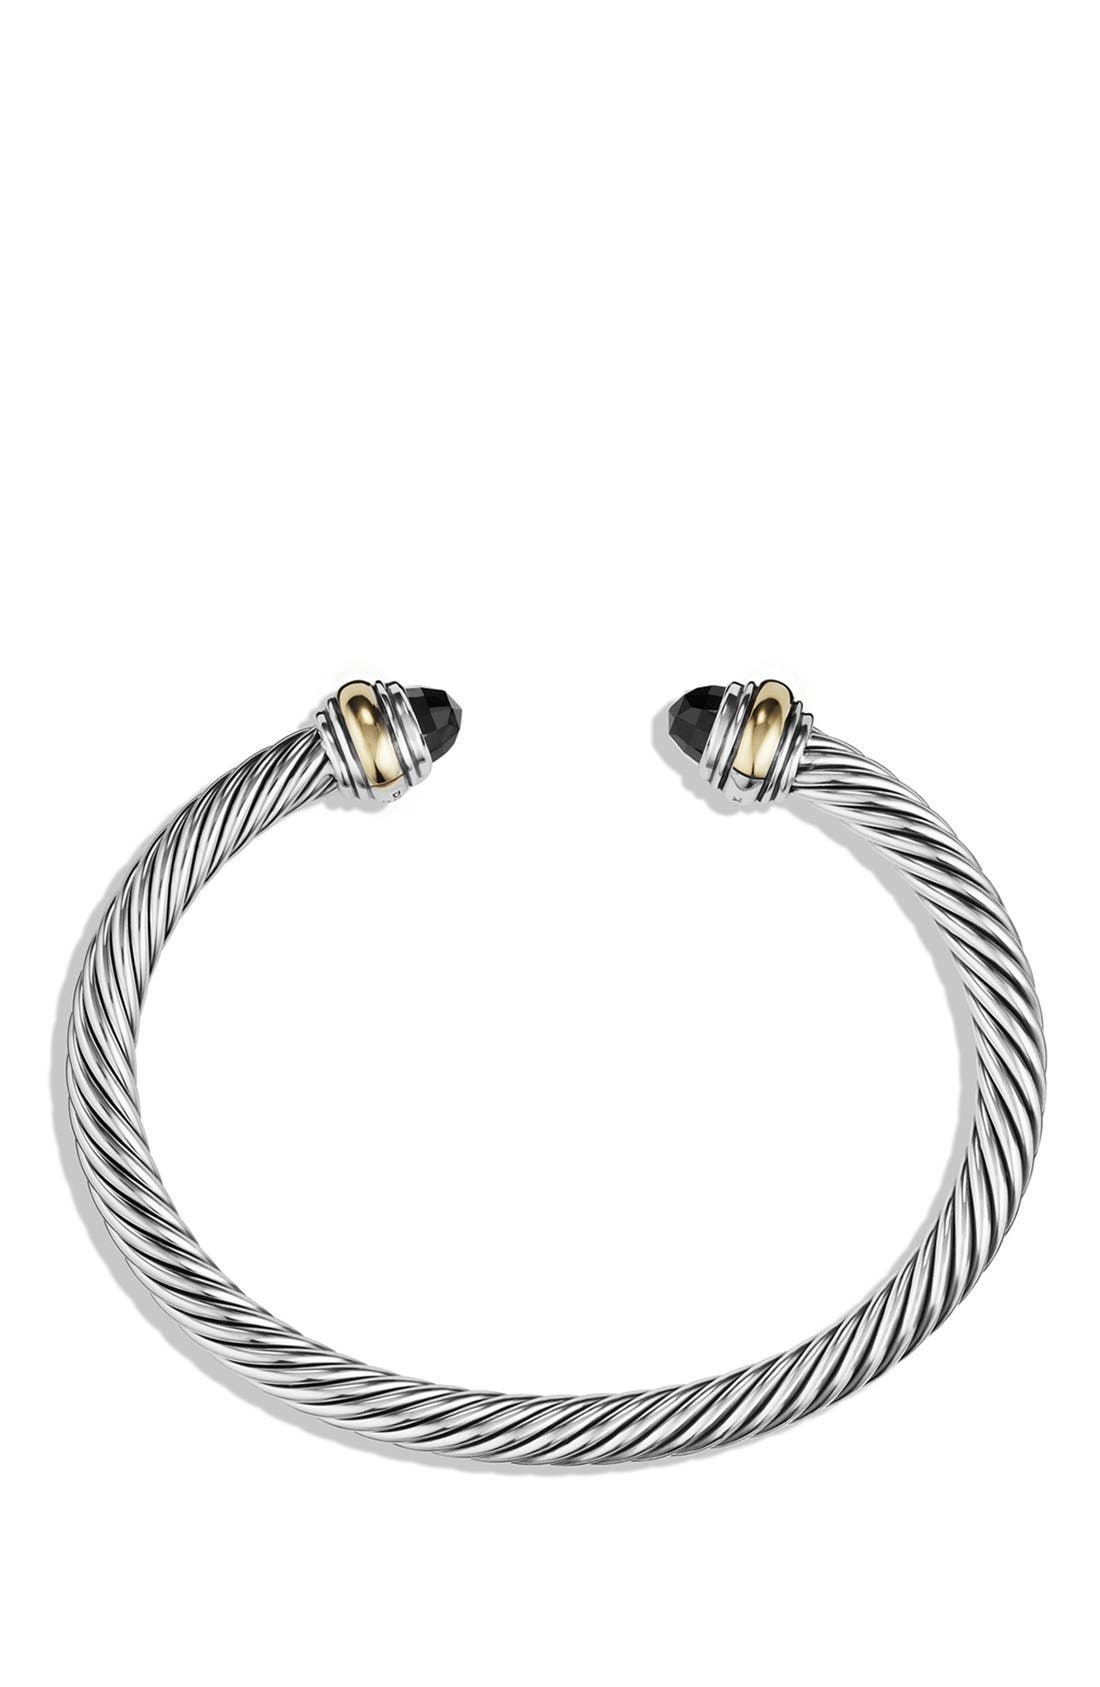 DAVID YURMAN,                             Cable Classics Bracelet with Semiprecious Stones & 14K Gold Accent, 5mm,                             Alternate thumbnail 2, color,                             BLACK ONYX